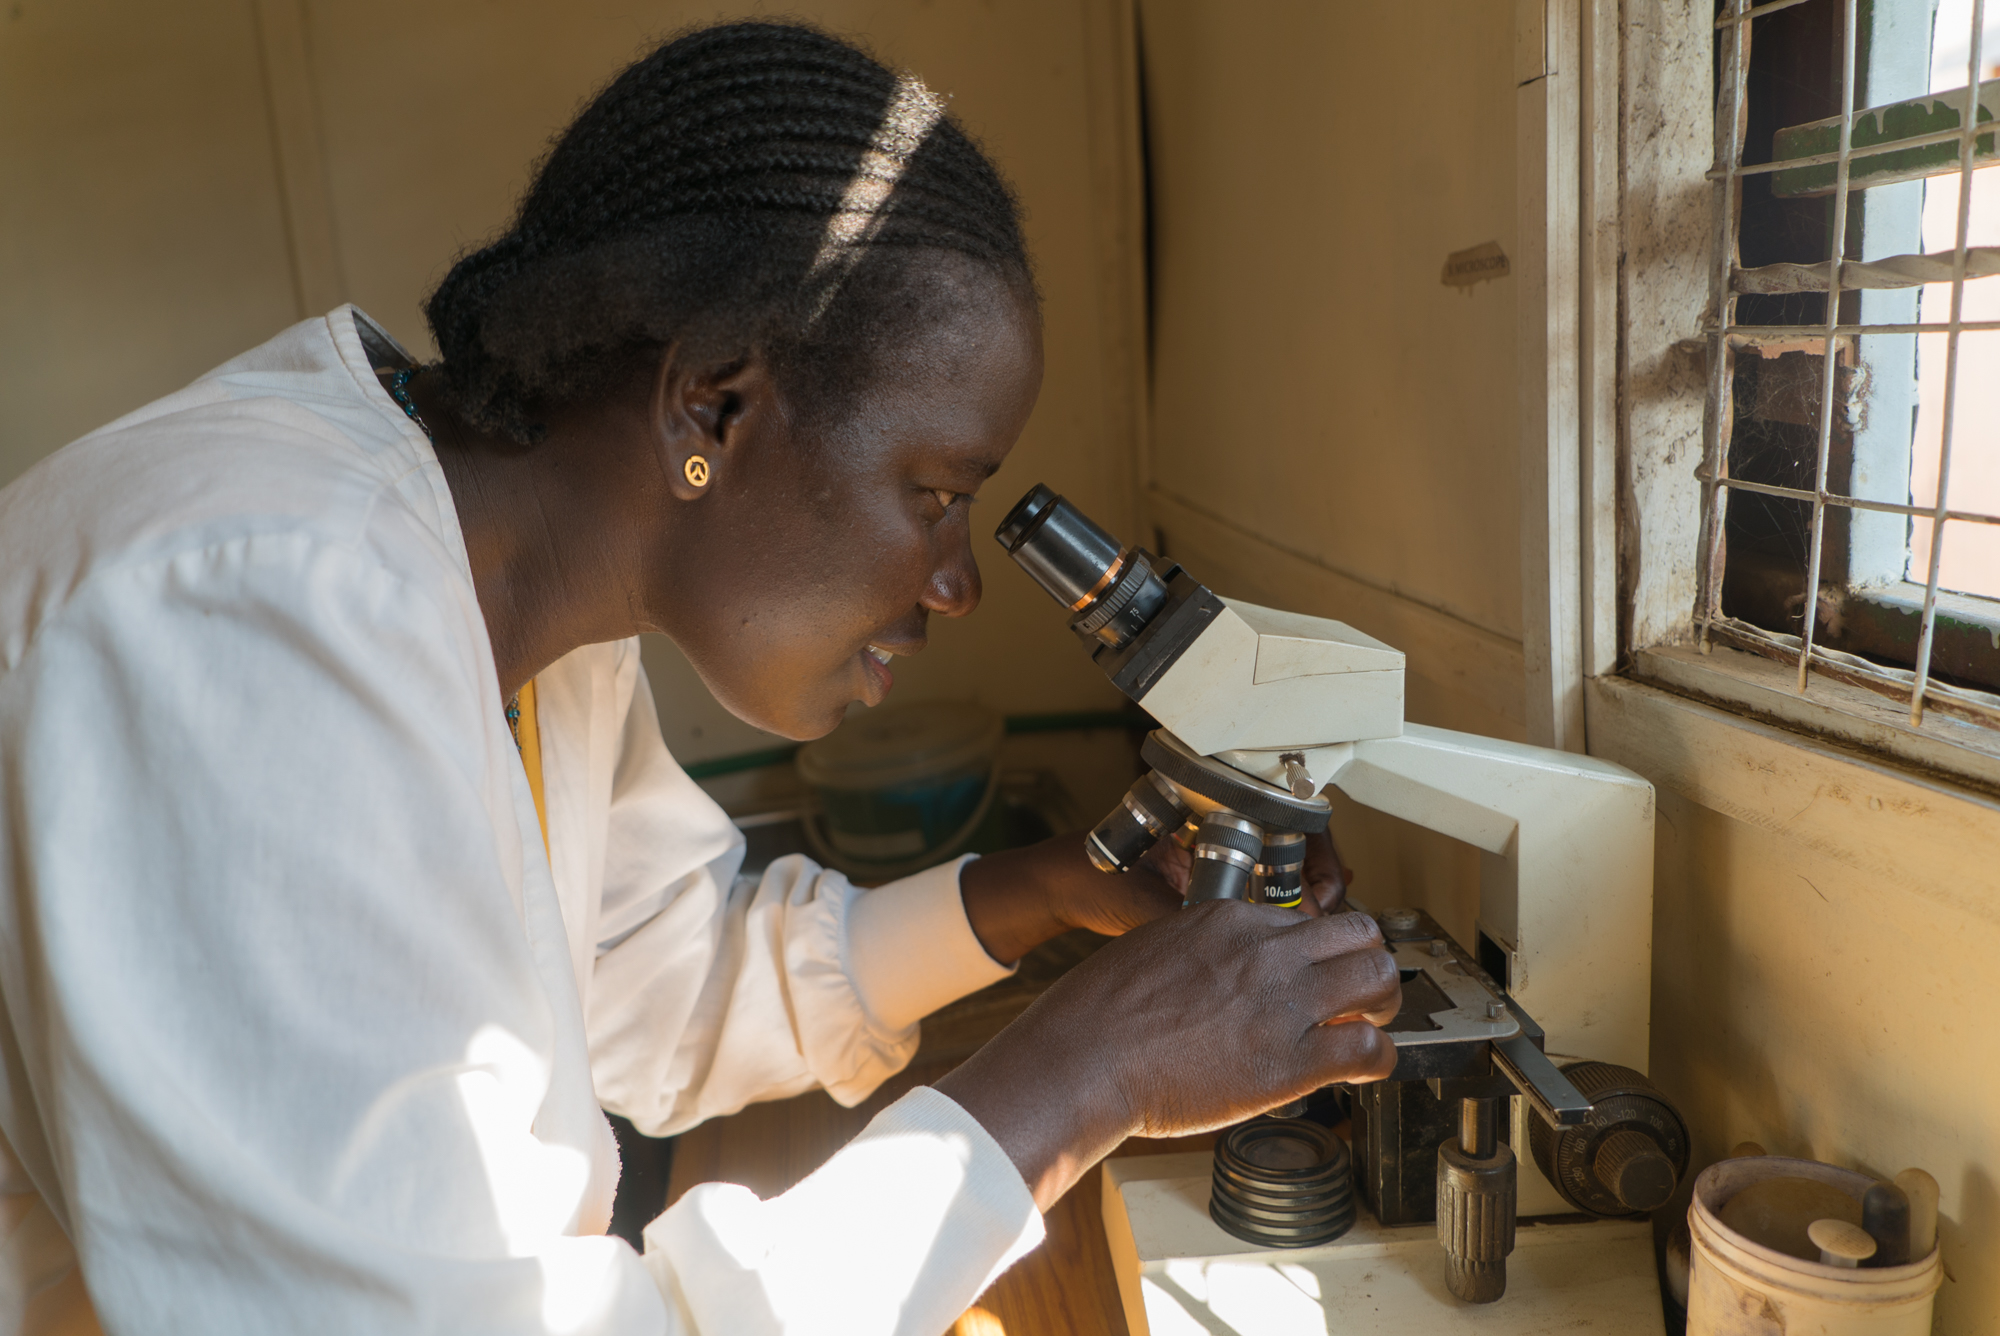 Highlights from our interview with Rhoda, a nurse at community clinic serving low income communities in Kisumu